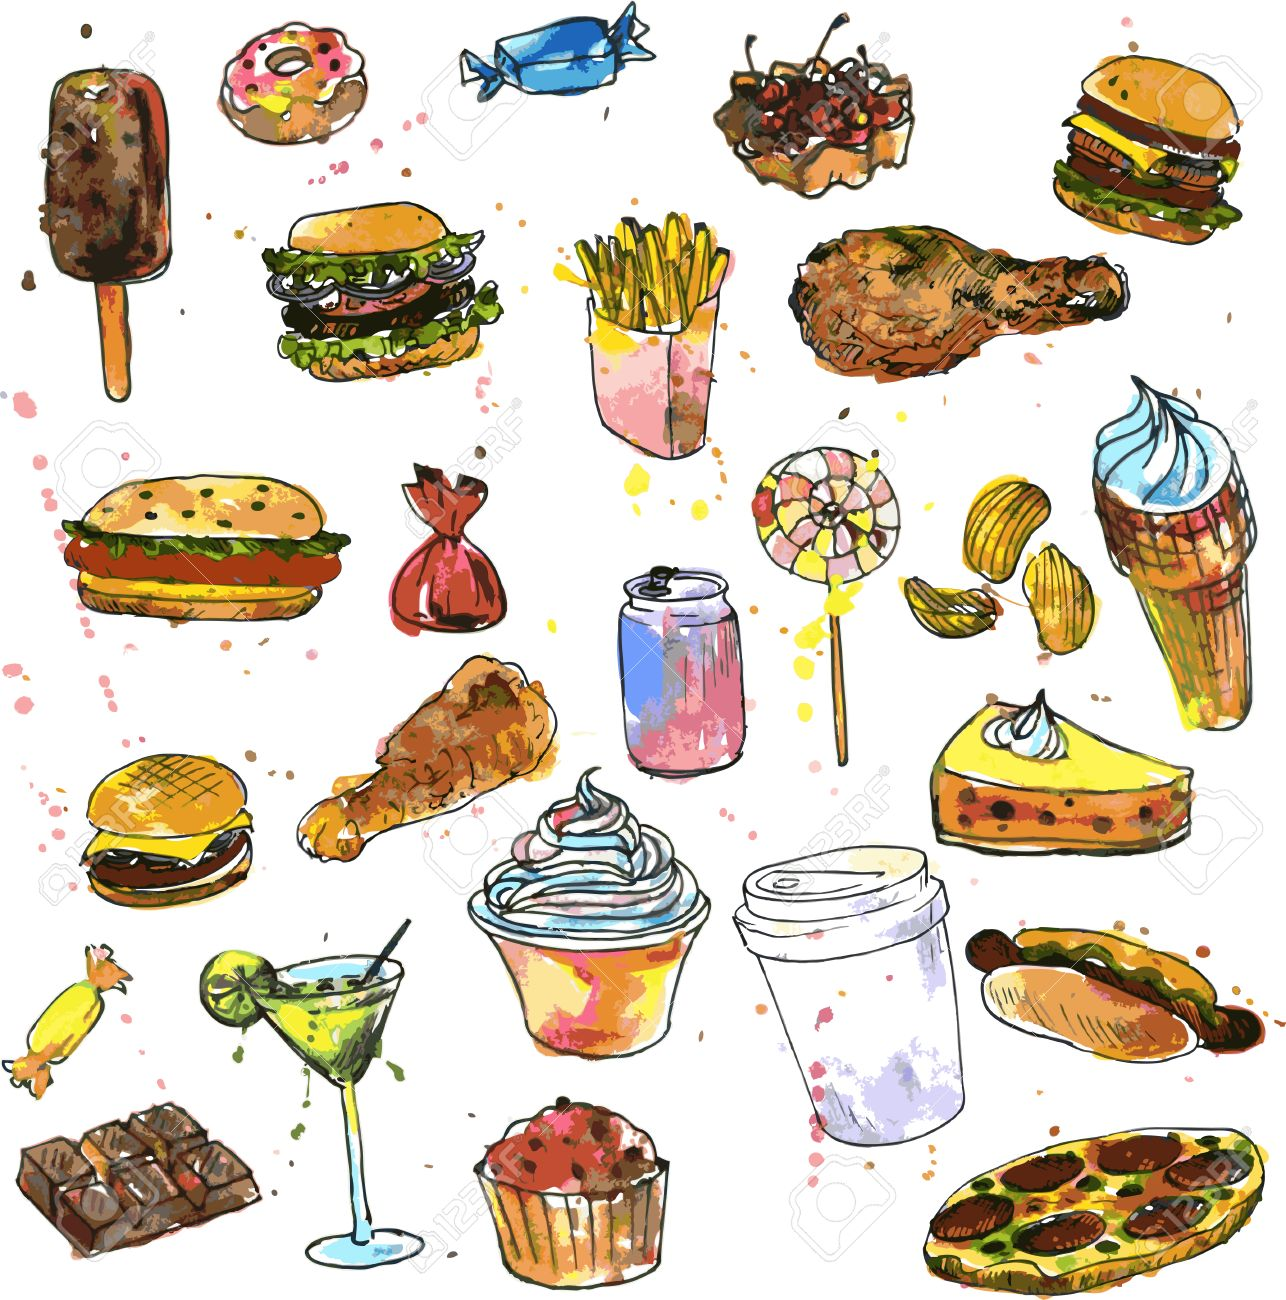 Food Drawing Images At Getdrawings Com Free For Personal